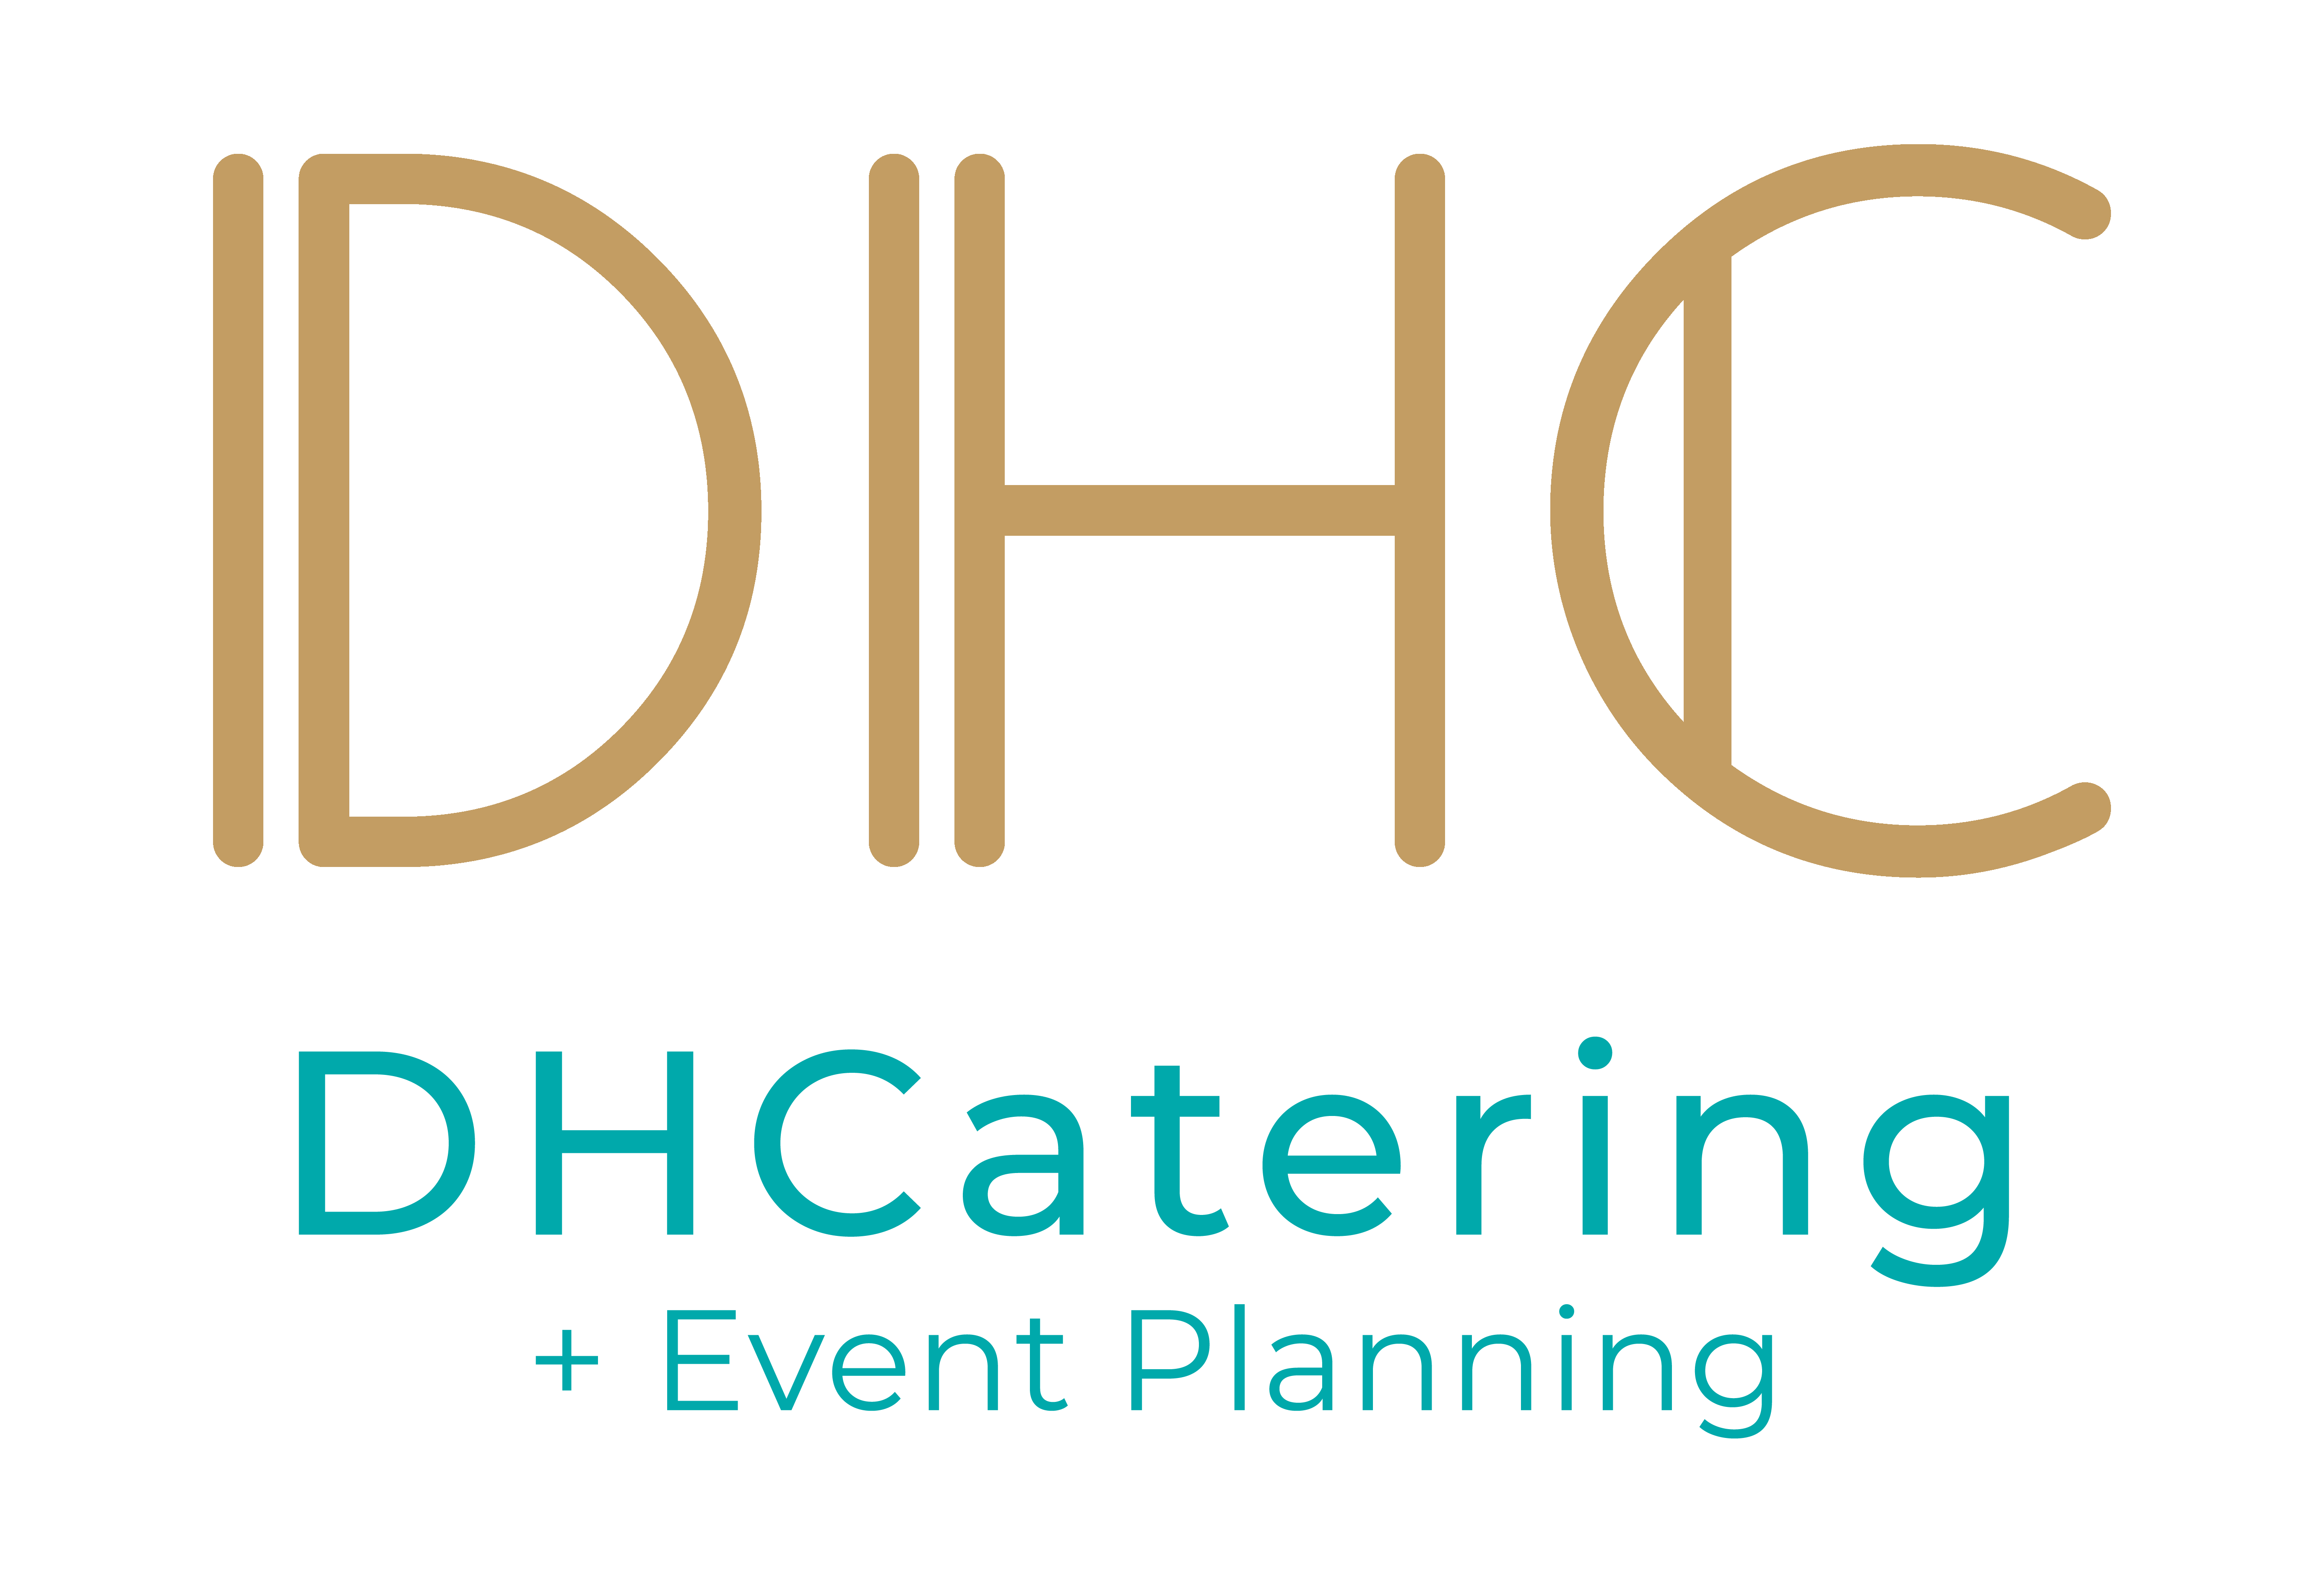 DH Catering + Event Planning